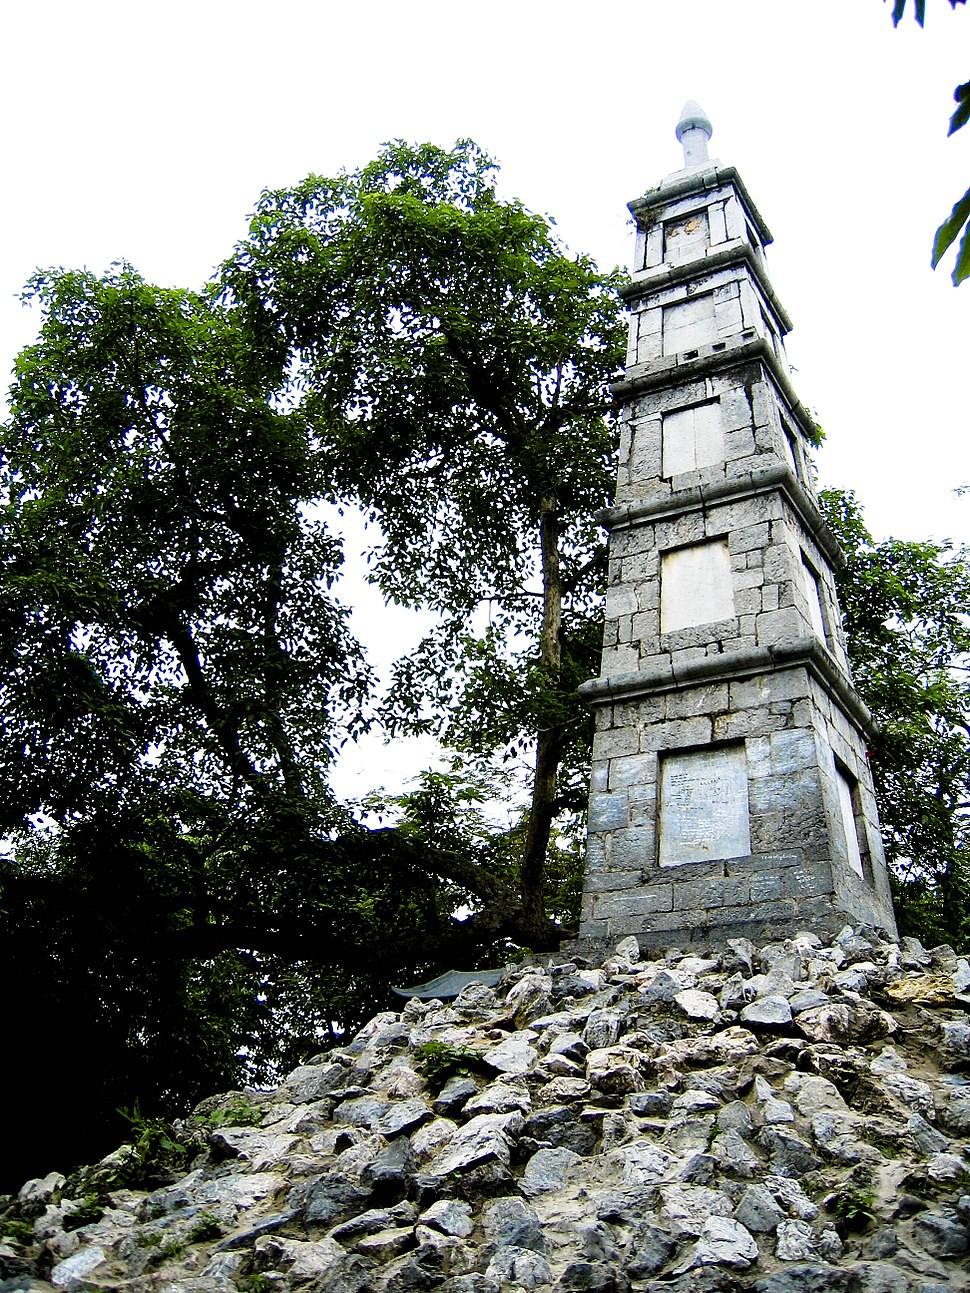 Pen Tower in Hanoi